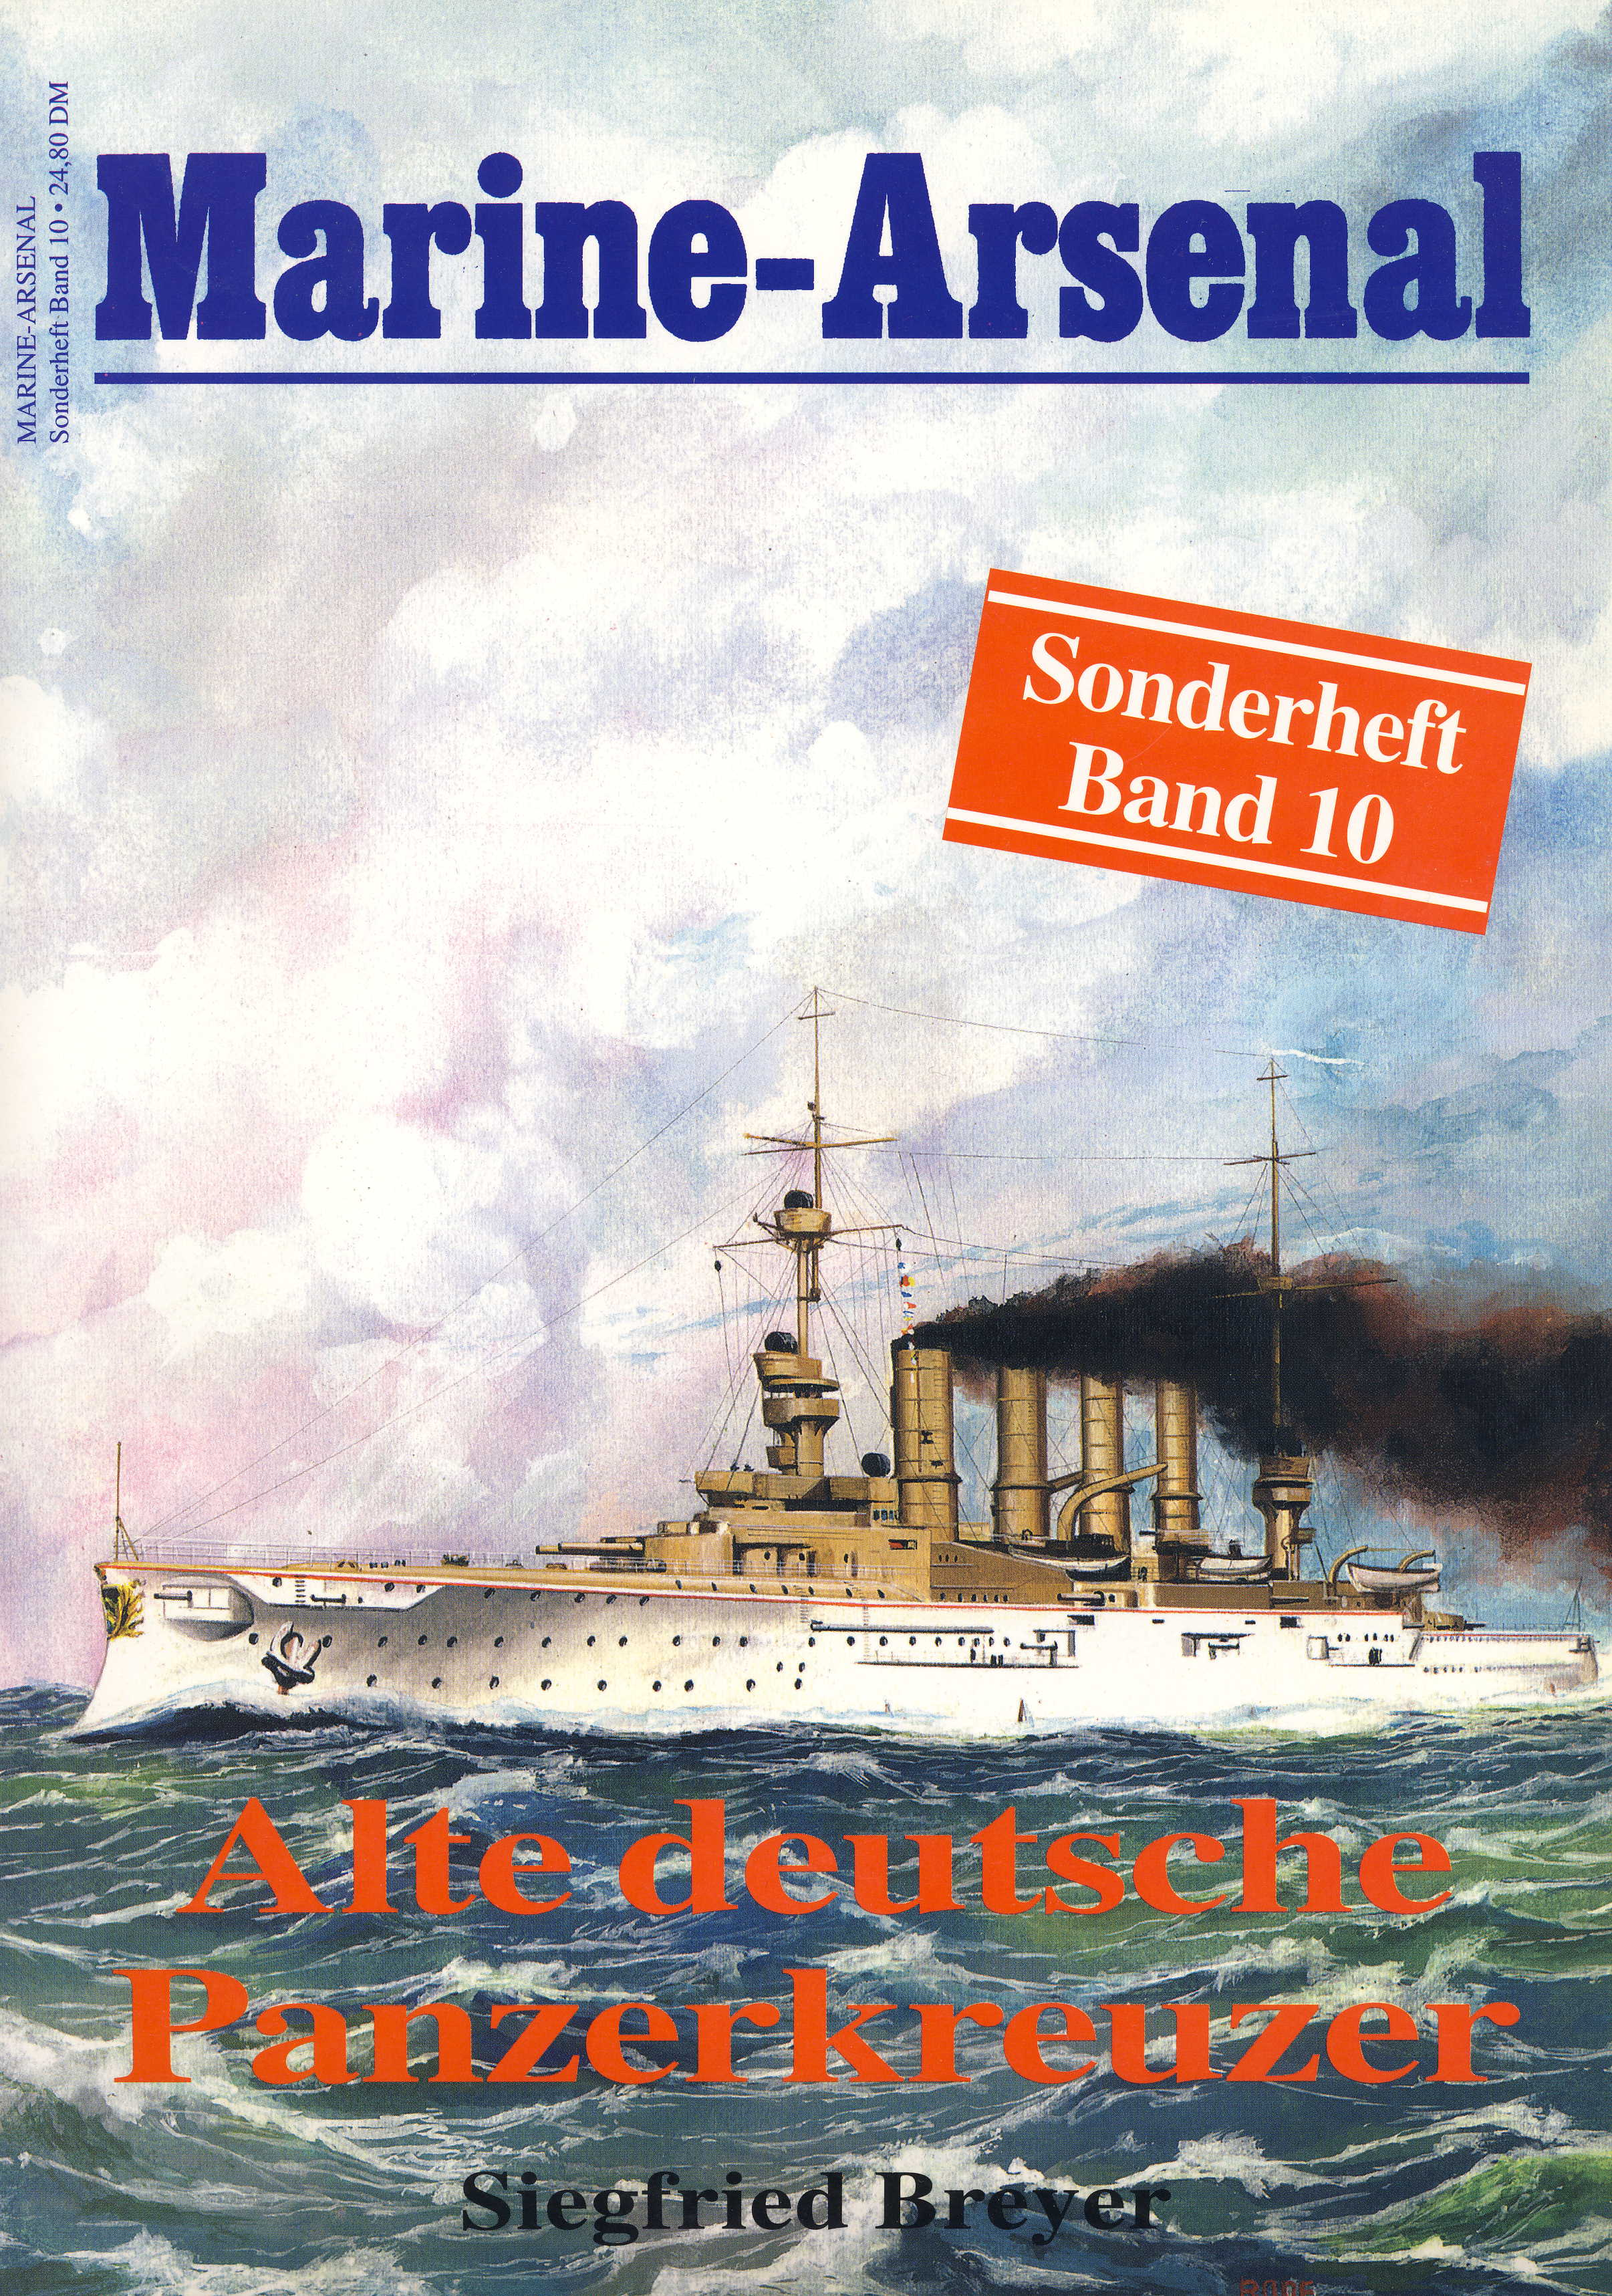 Breyer Marine-Arsenal Sonderheft Band 10: Alte deutsche Panzerkr